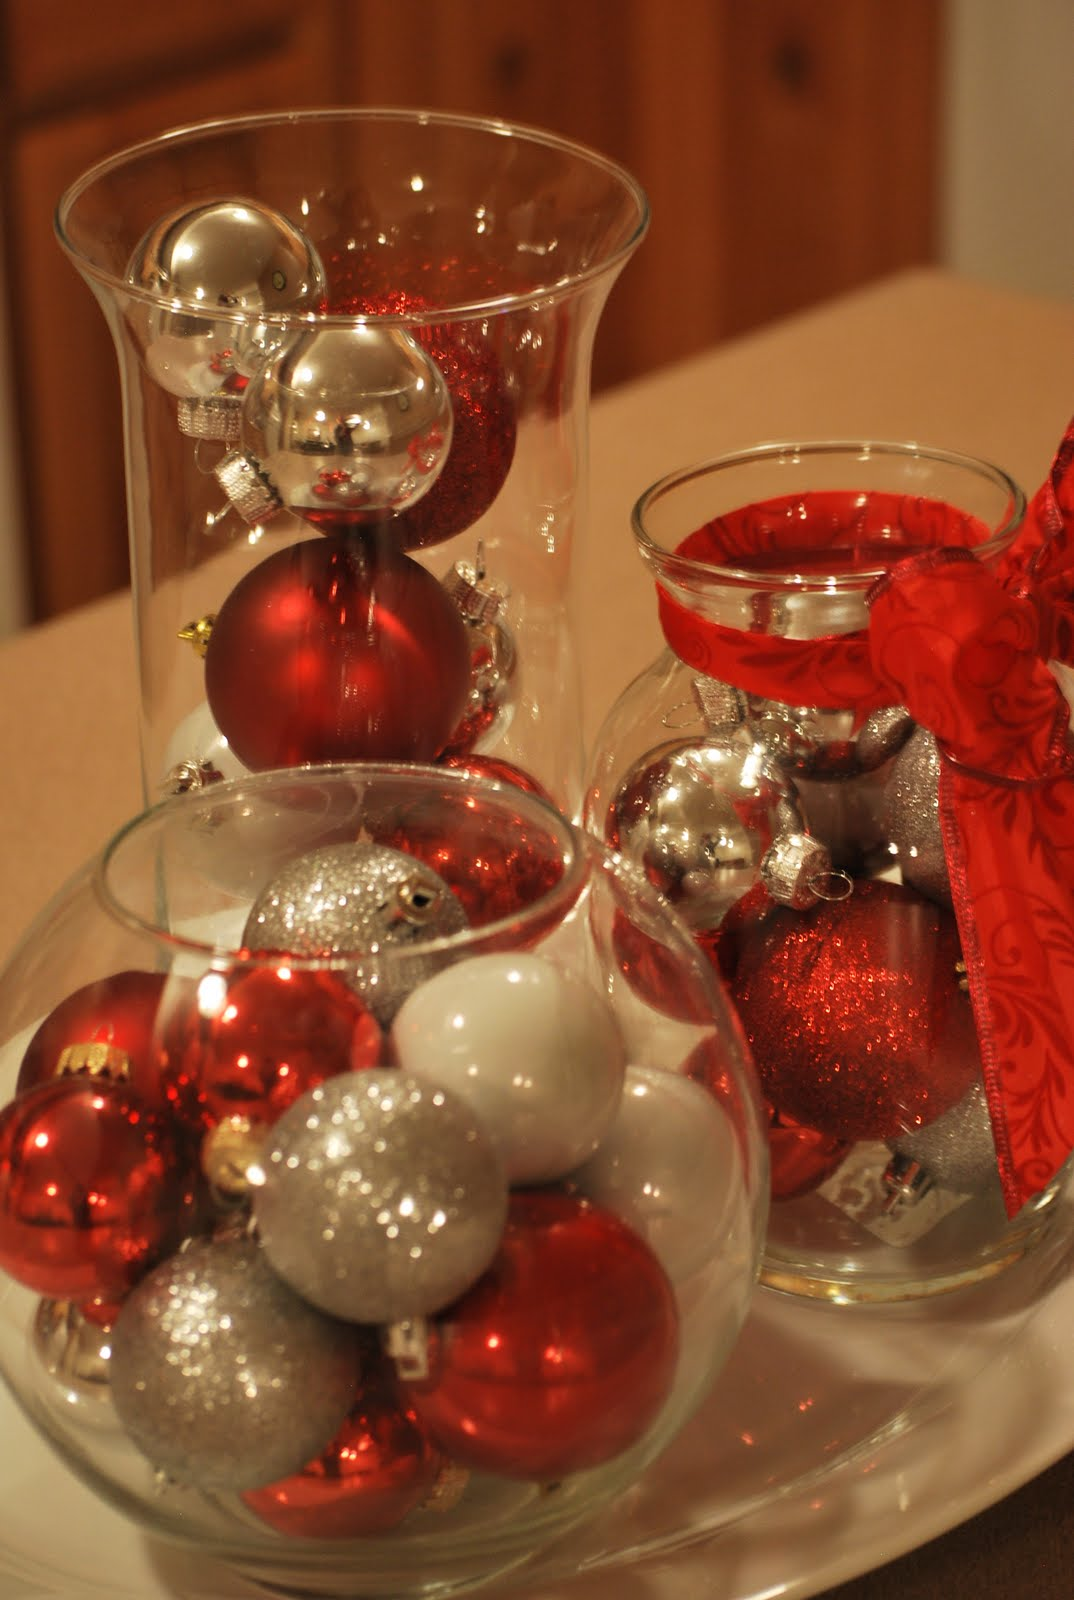 Frugal Wife = Wealthy Life: Decorating For The Holidays On A Budget (